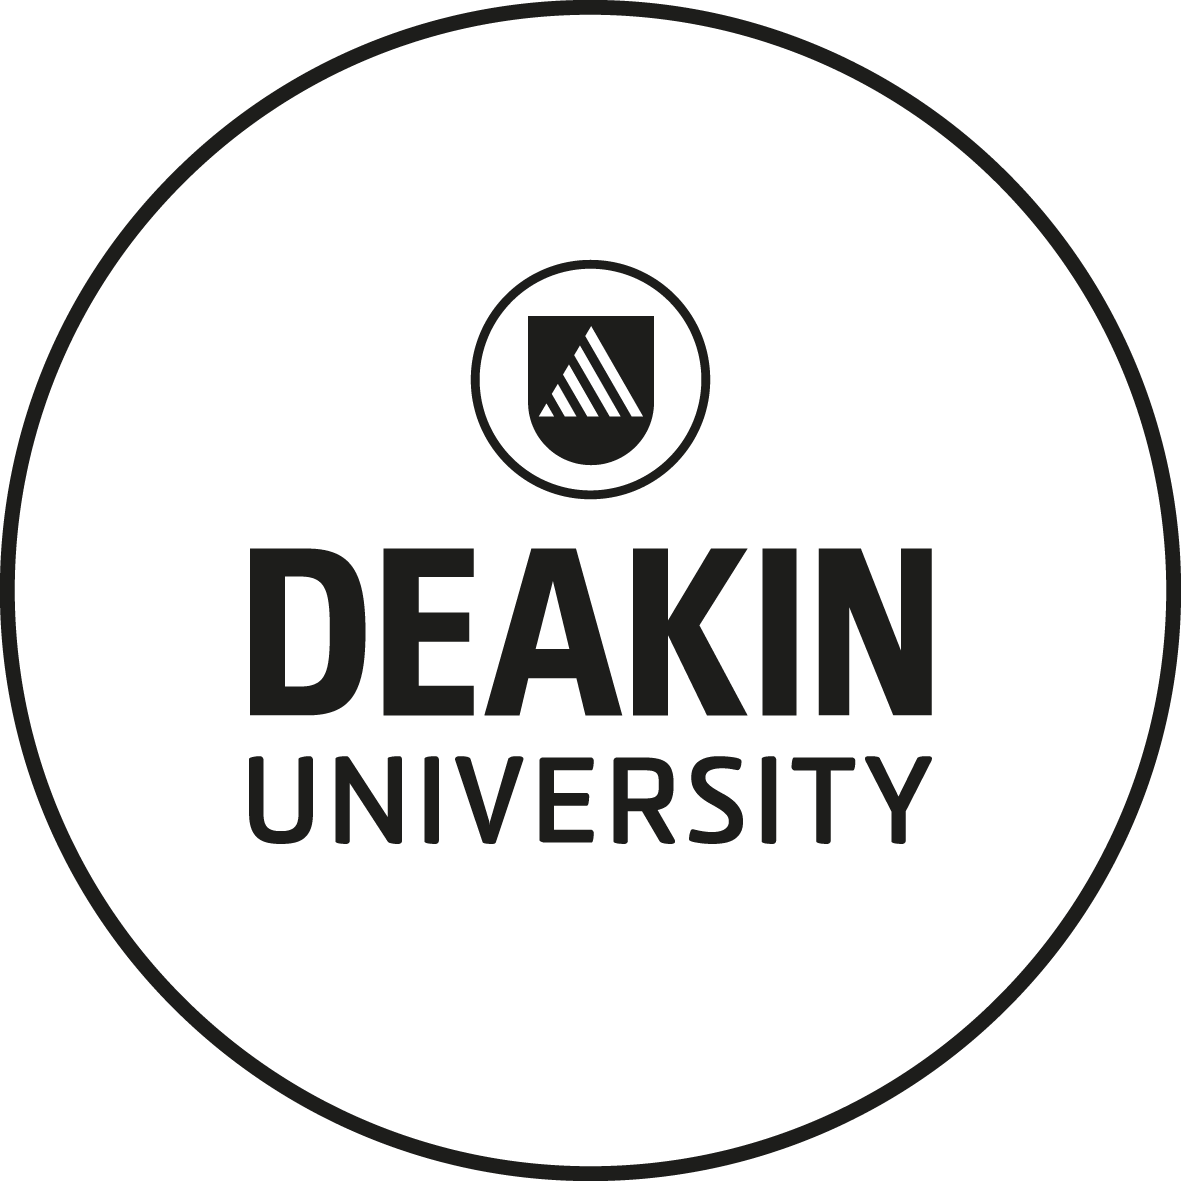 Copy of Deakin University logo